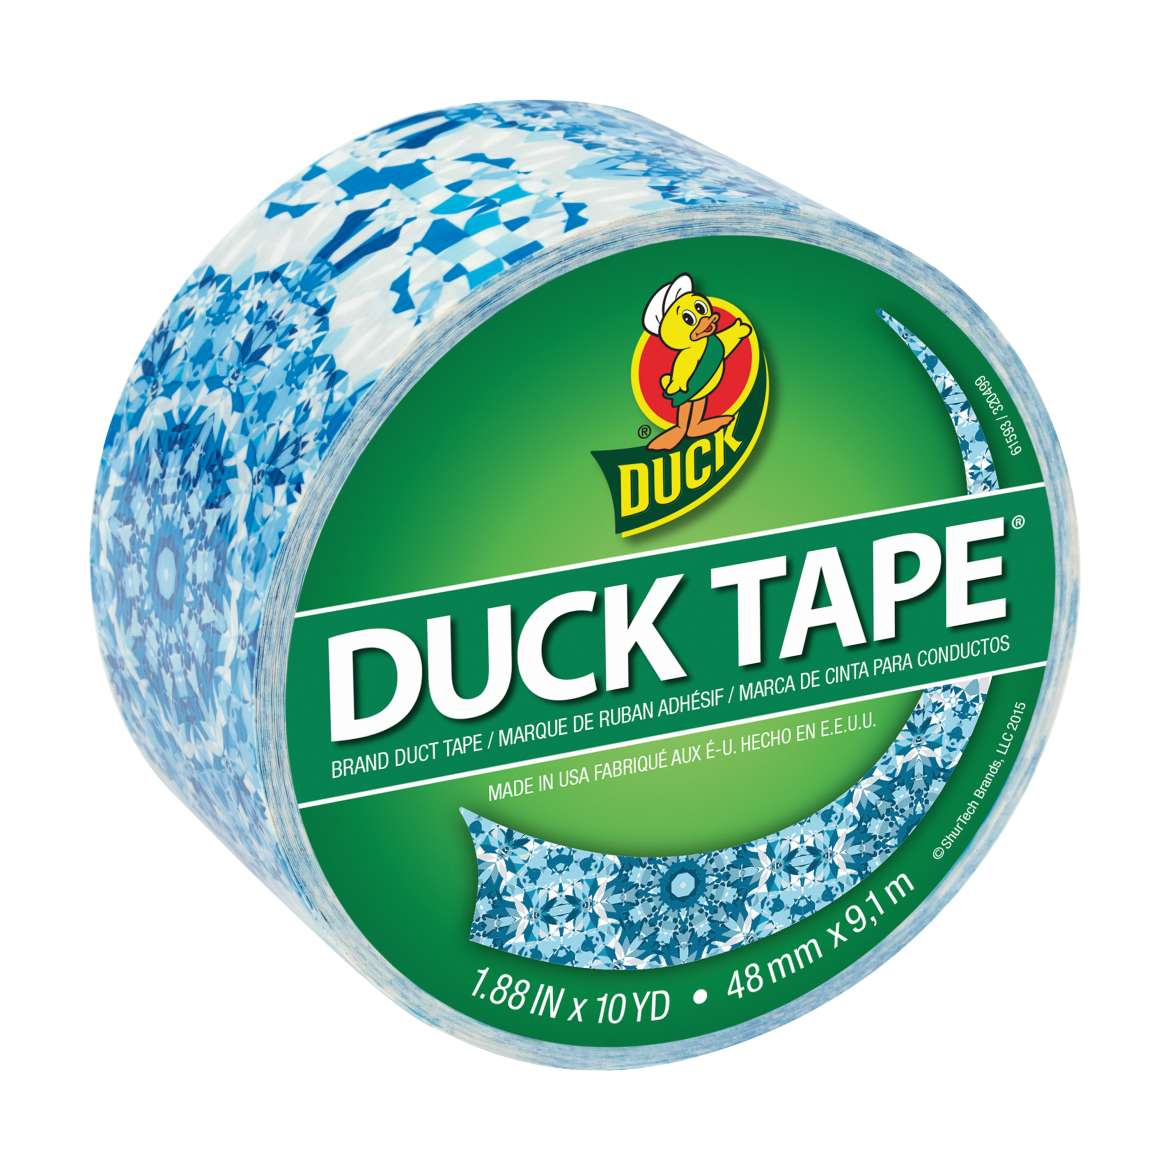 Printed Duck Tape® Brand Duct Tape - Kaleidoscope, 1.88 in. x 10 yd. Image